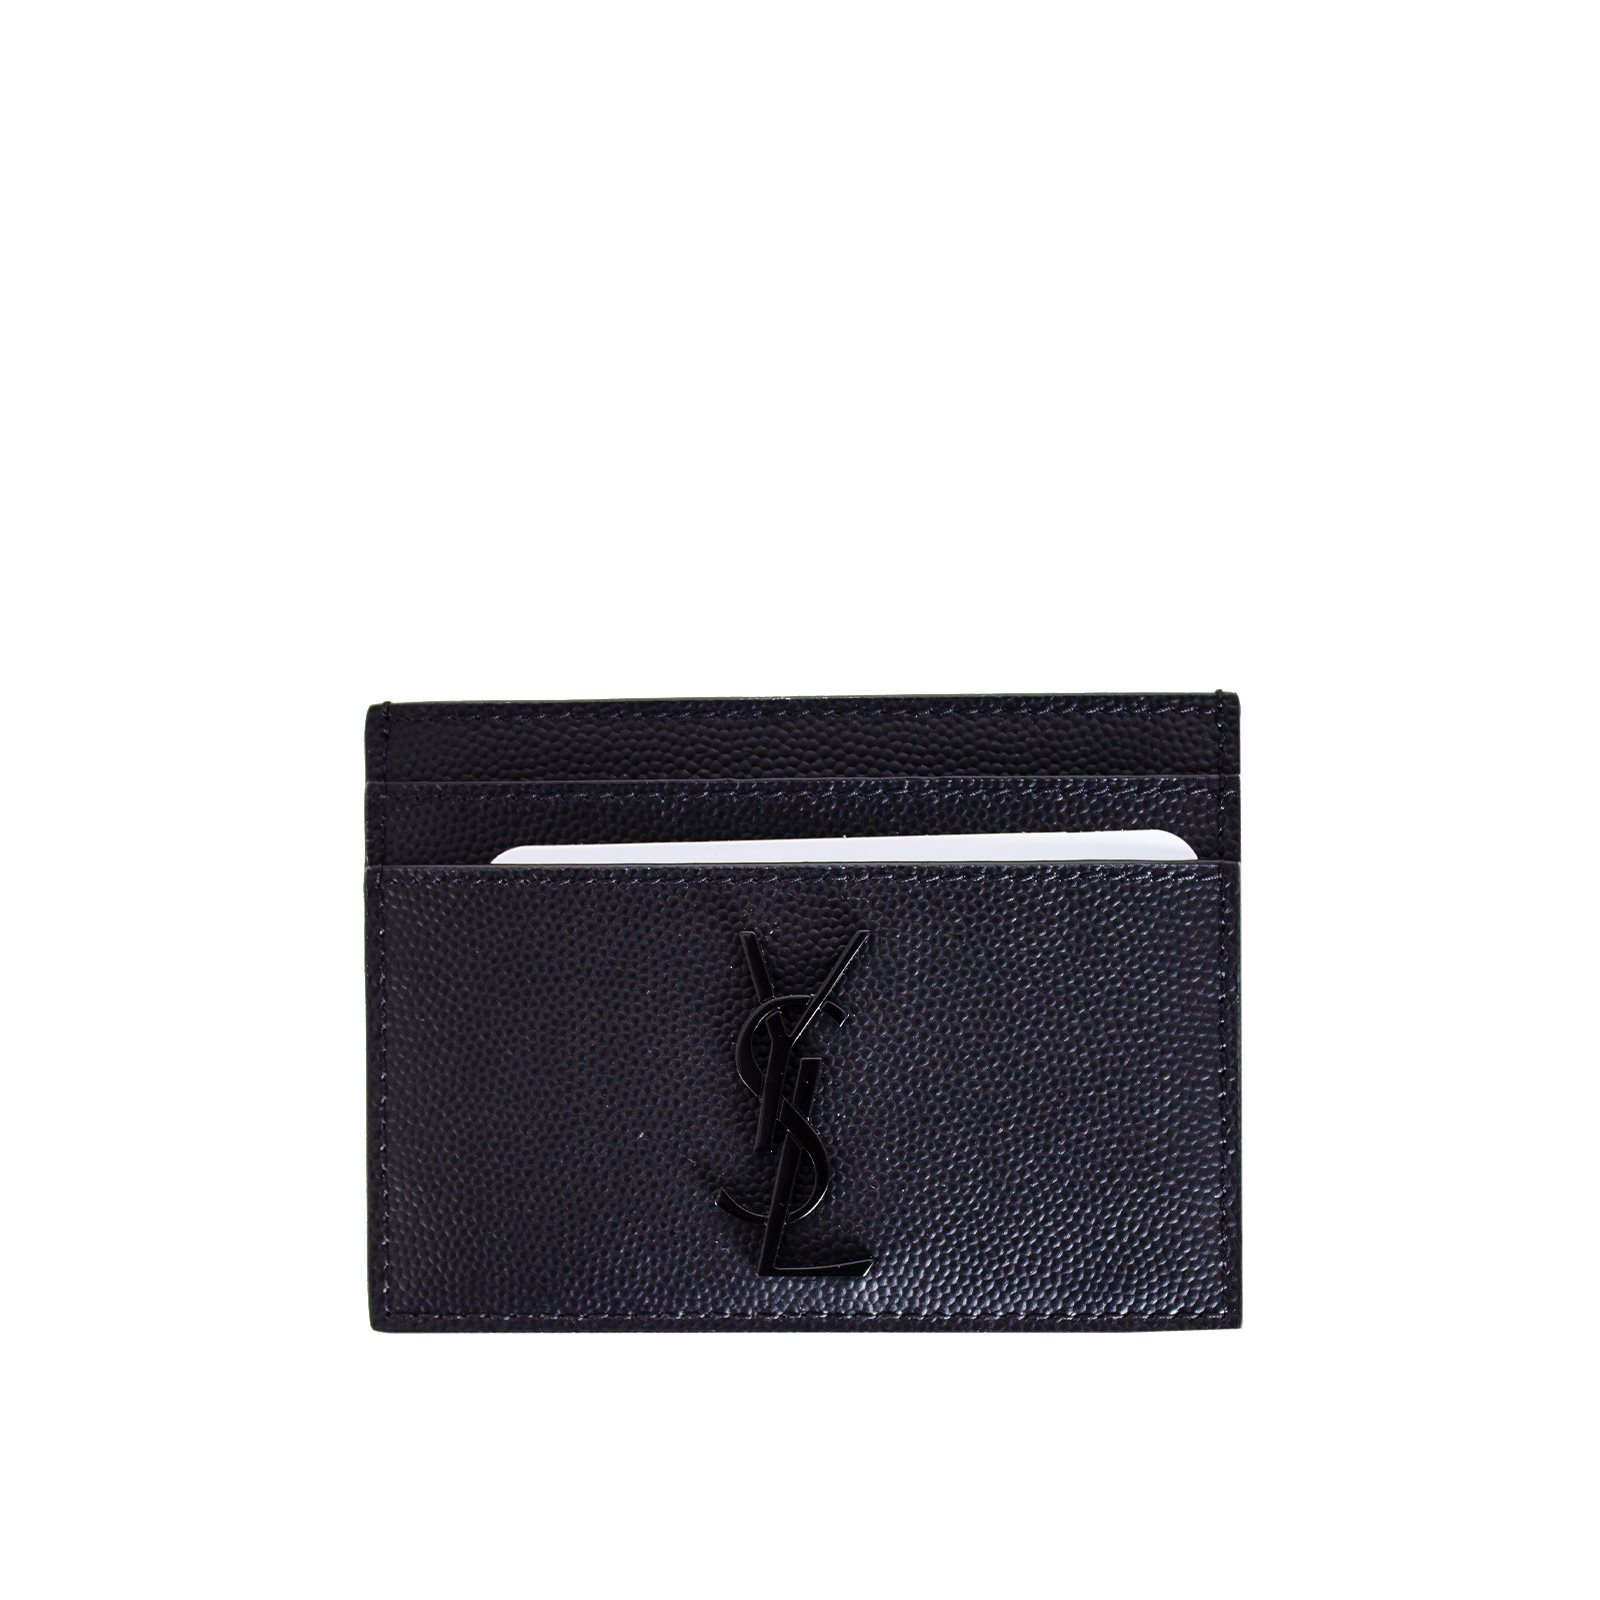 Saint LaurentParis Card Holder